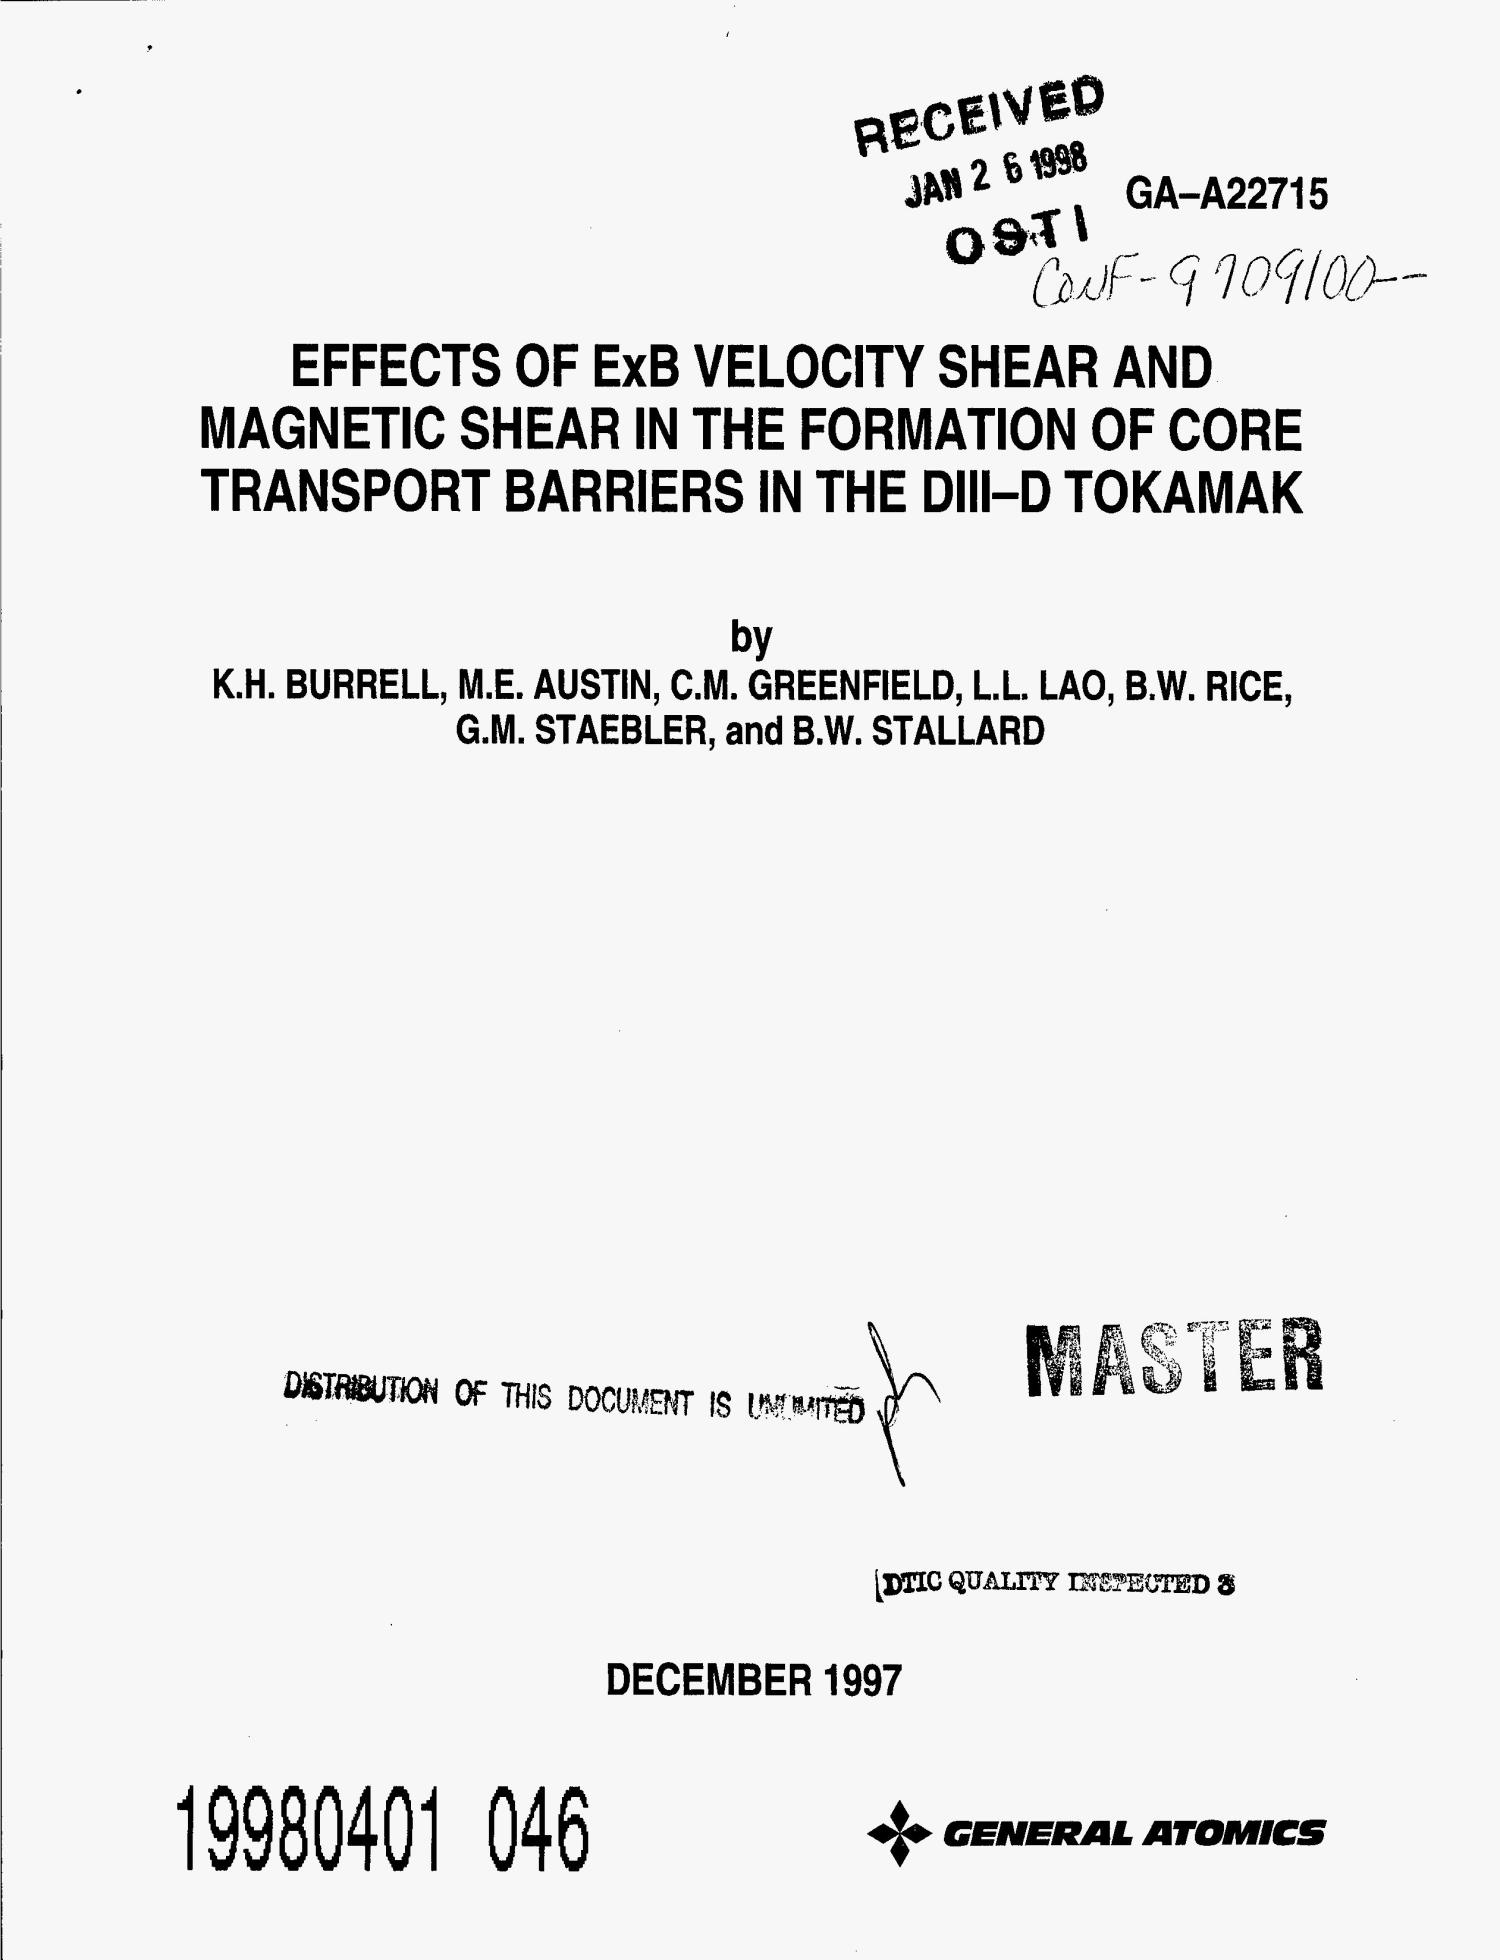 Effects of ExB Velocity Shear and Magnetic Shear in the Formation of Core Transport Barriers in the DIII-D Tokamak                                                                                                      [Sequence #]: 1 of 22